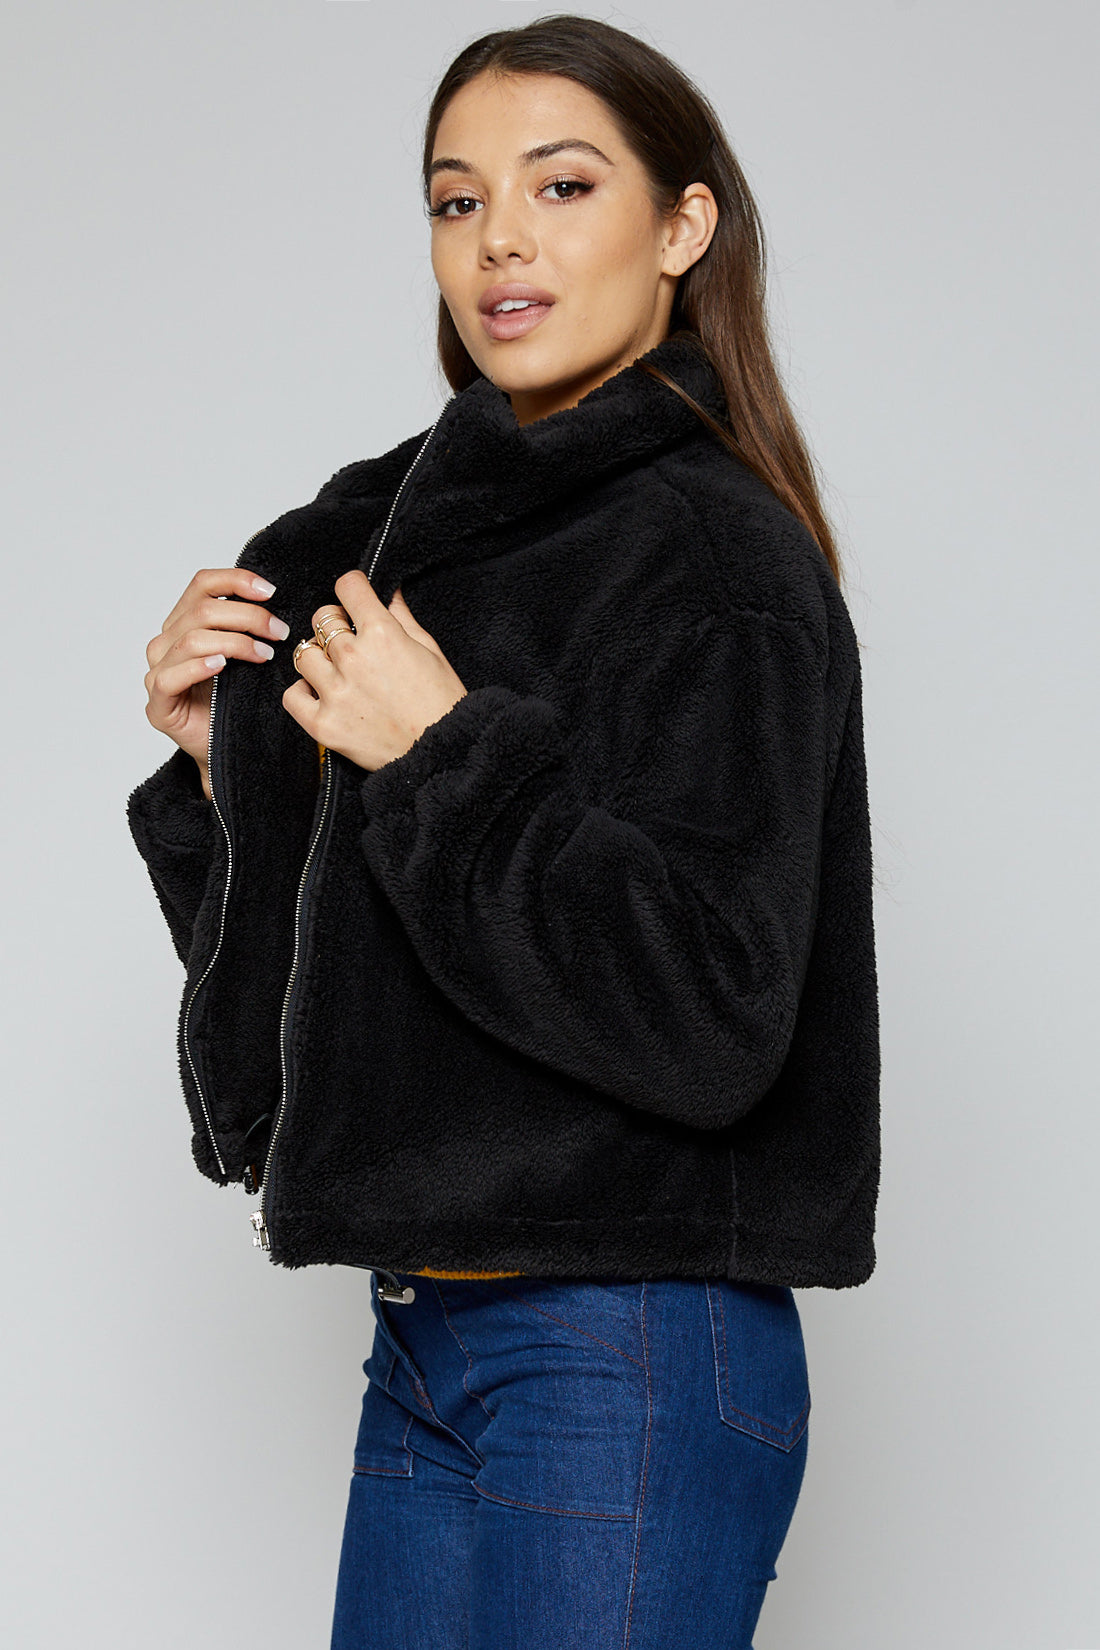 Cambridge Fleece Jacket in Black